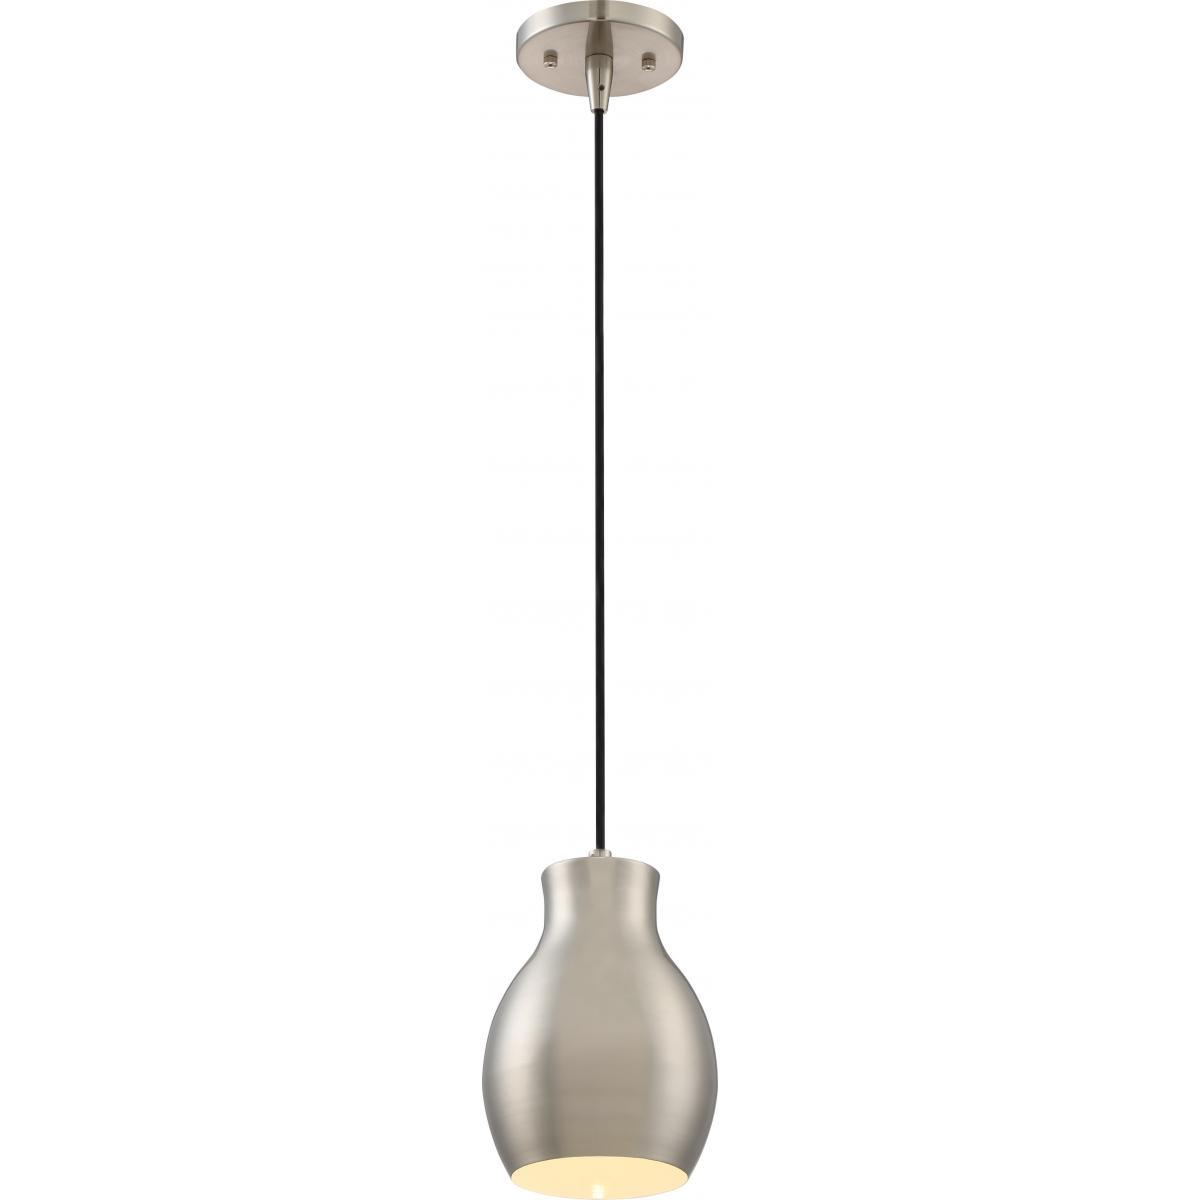 Vessel LED Mini Pendant Brushed Nickel / White Accent Finish Ceiling Nuvo Lighting